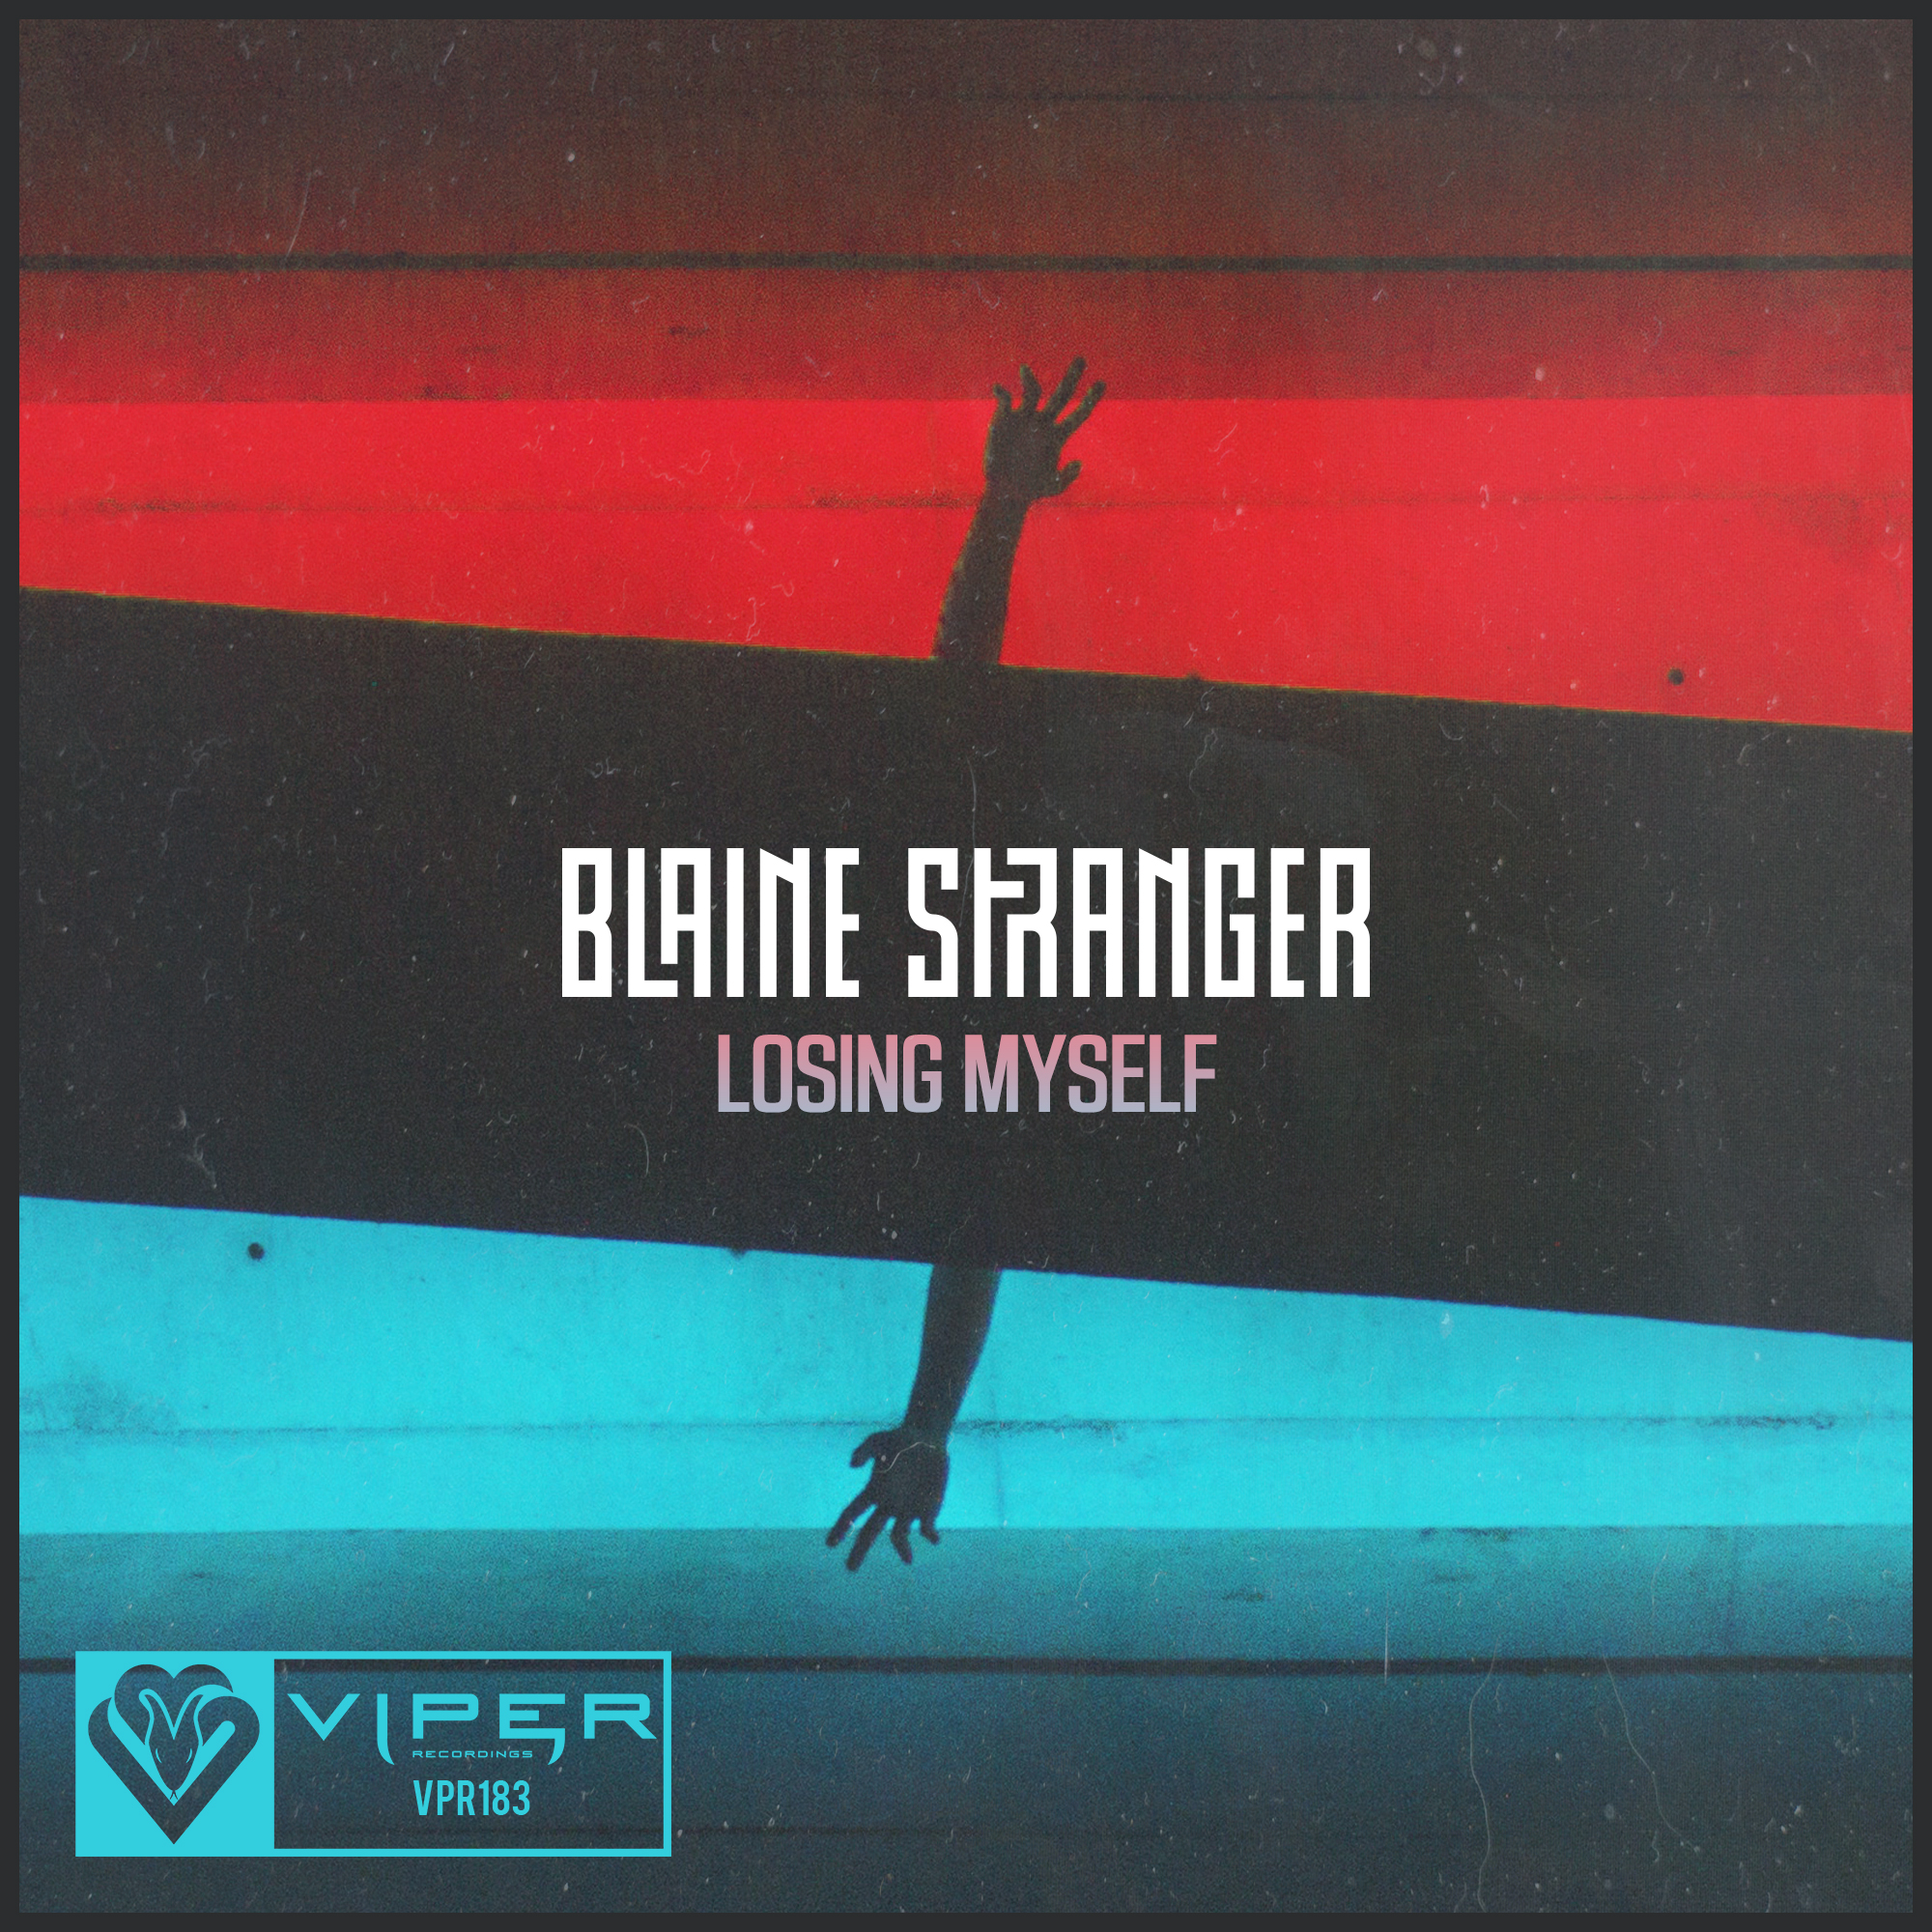 Blaine Stranger - Losing Myself